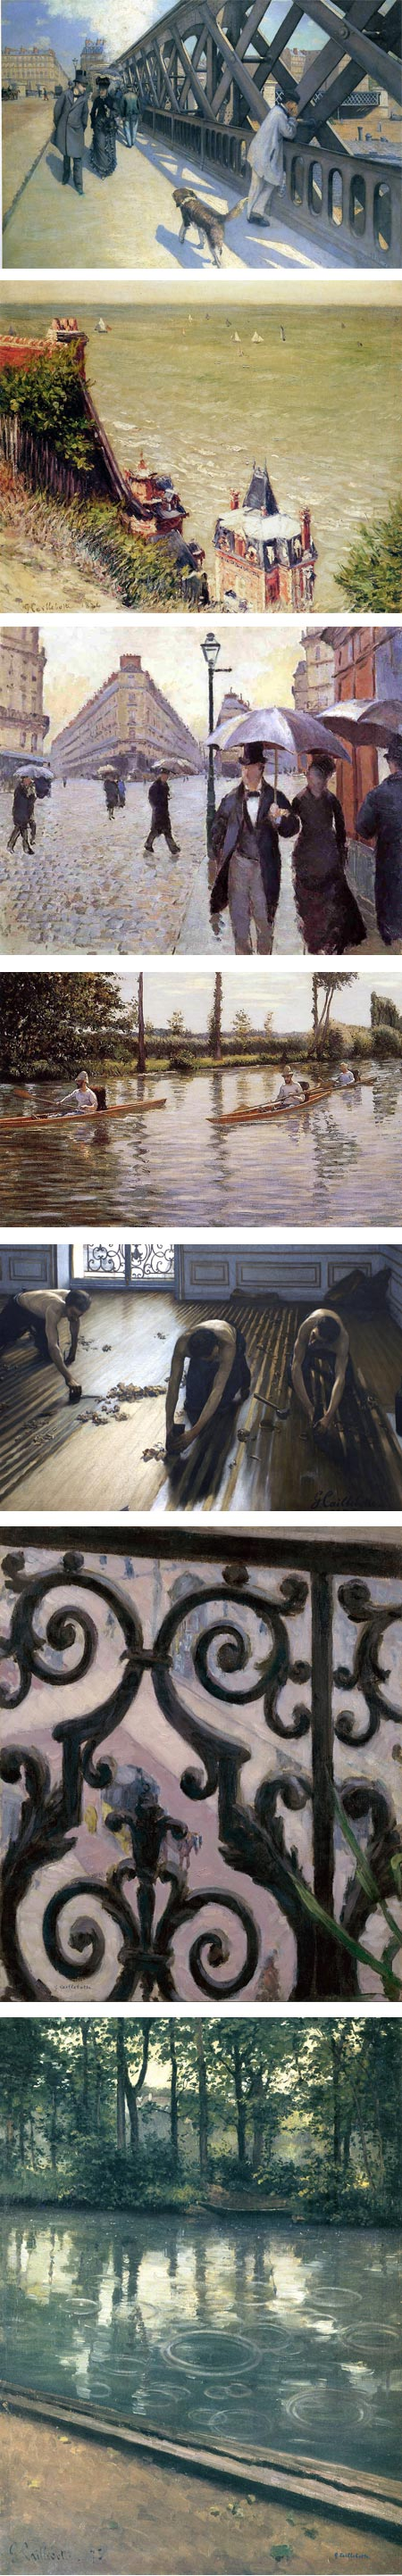 Gustave Caillebotte at Schirn Kunsthalle Frankfurt